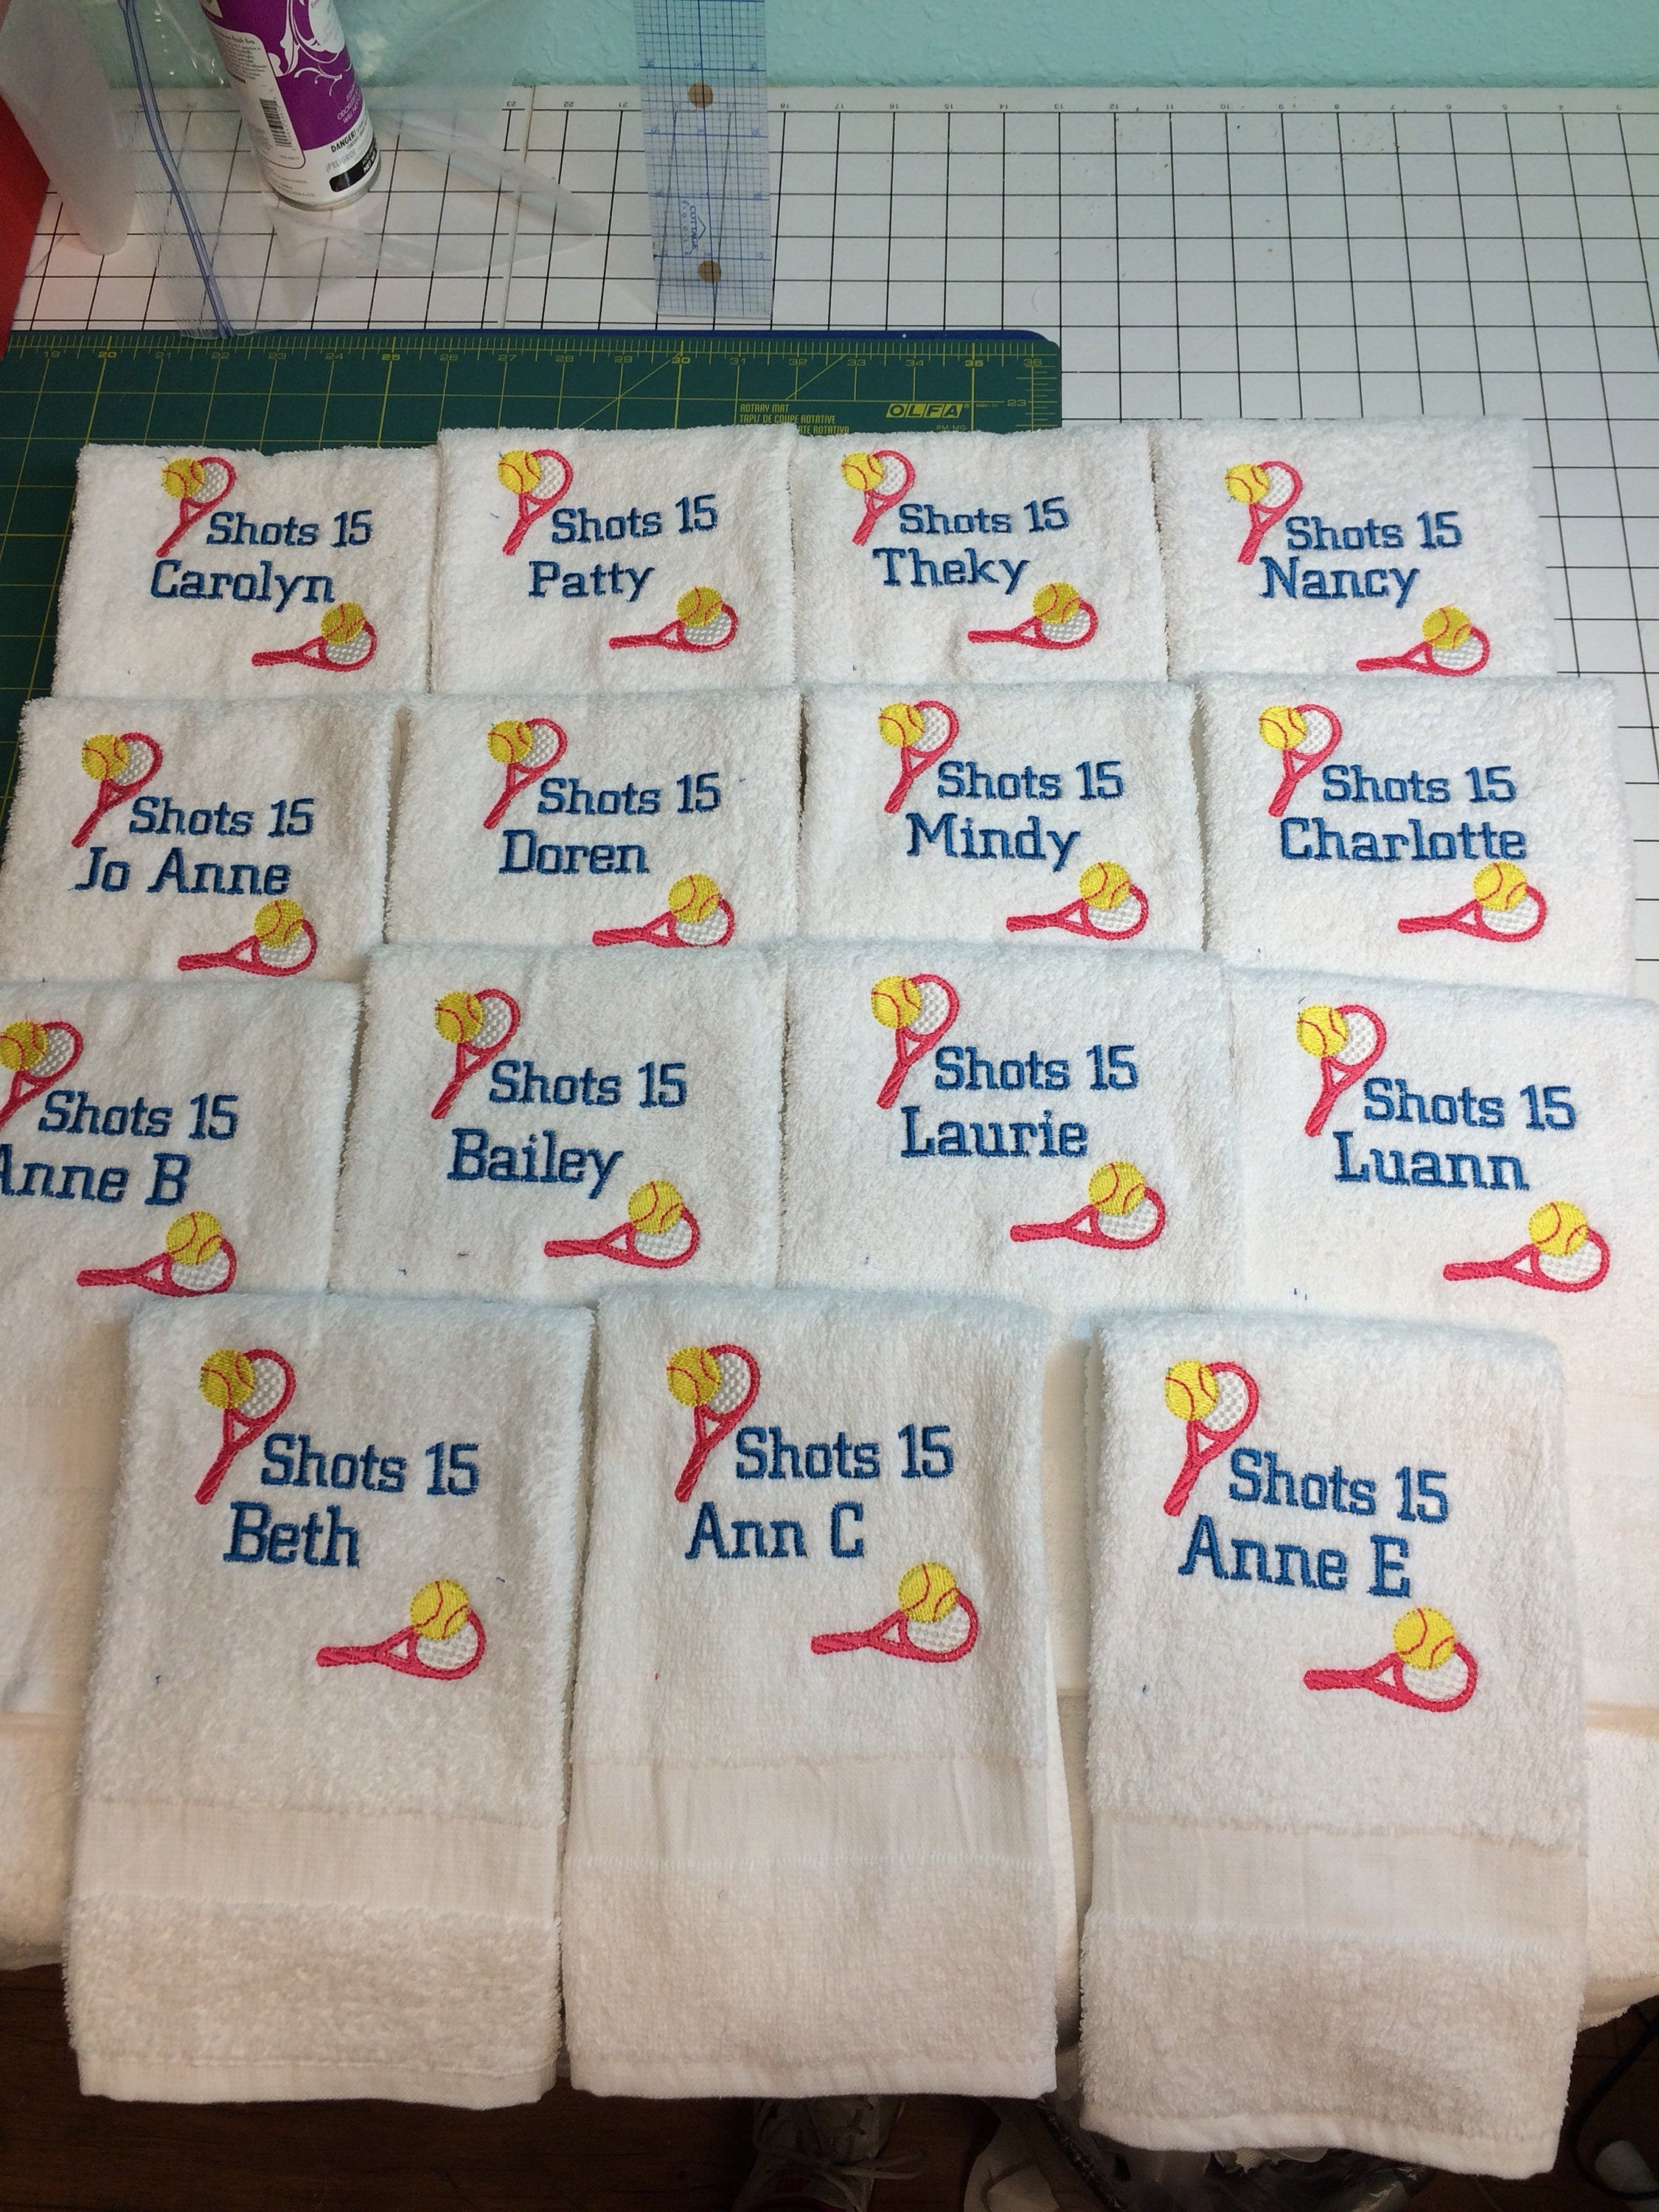 Custom Personalized Embroidered Tennis Towels Personalized Tennis